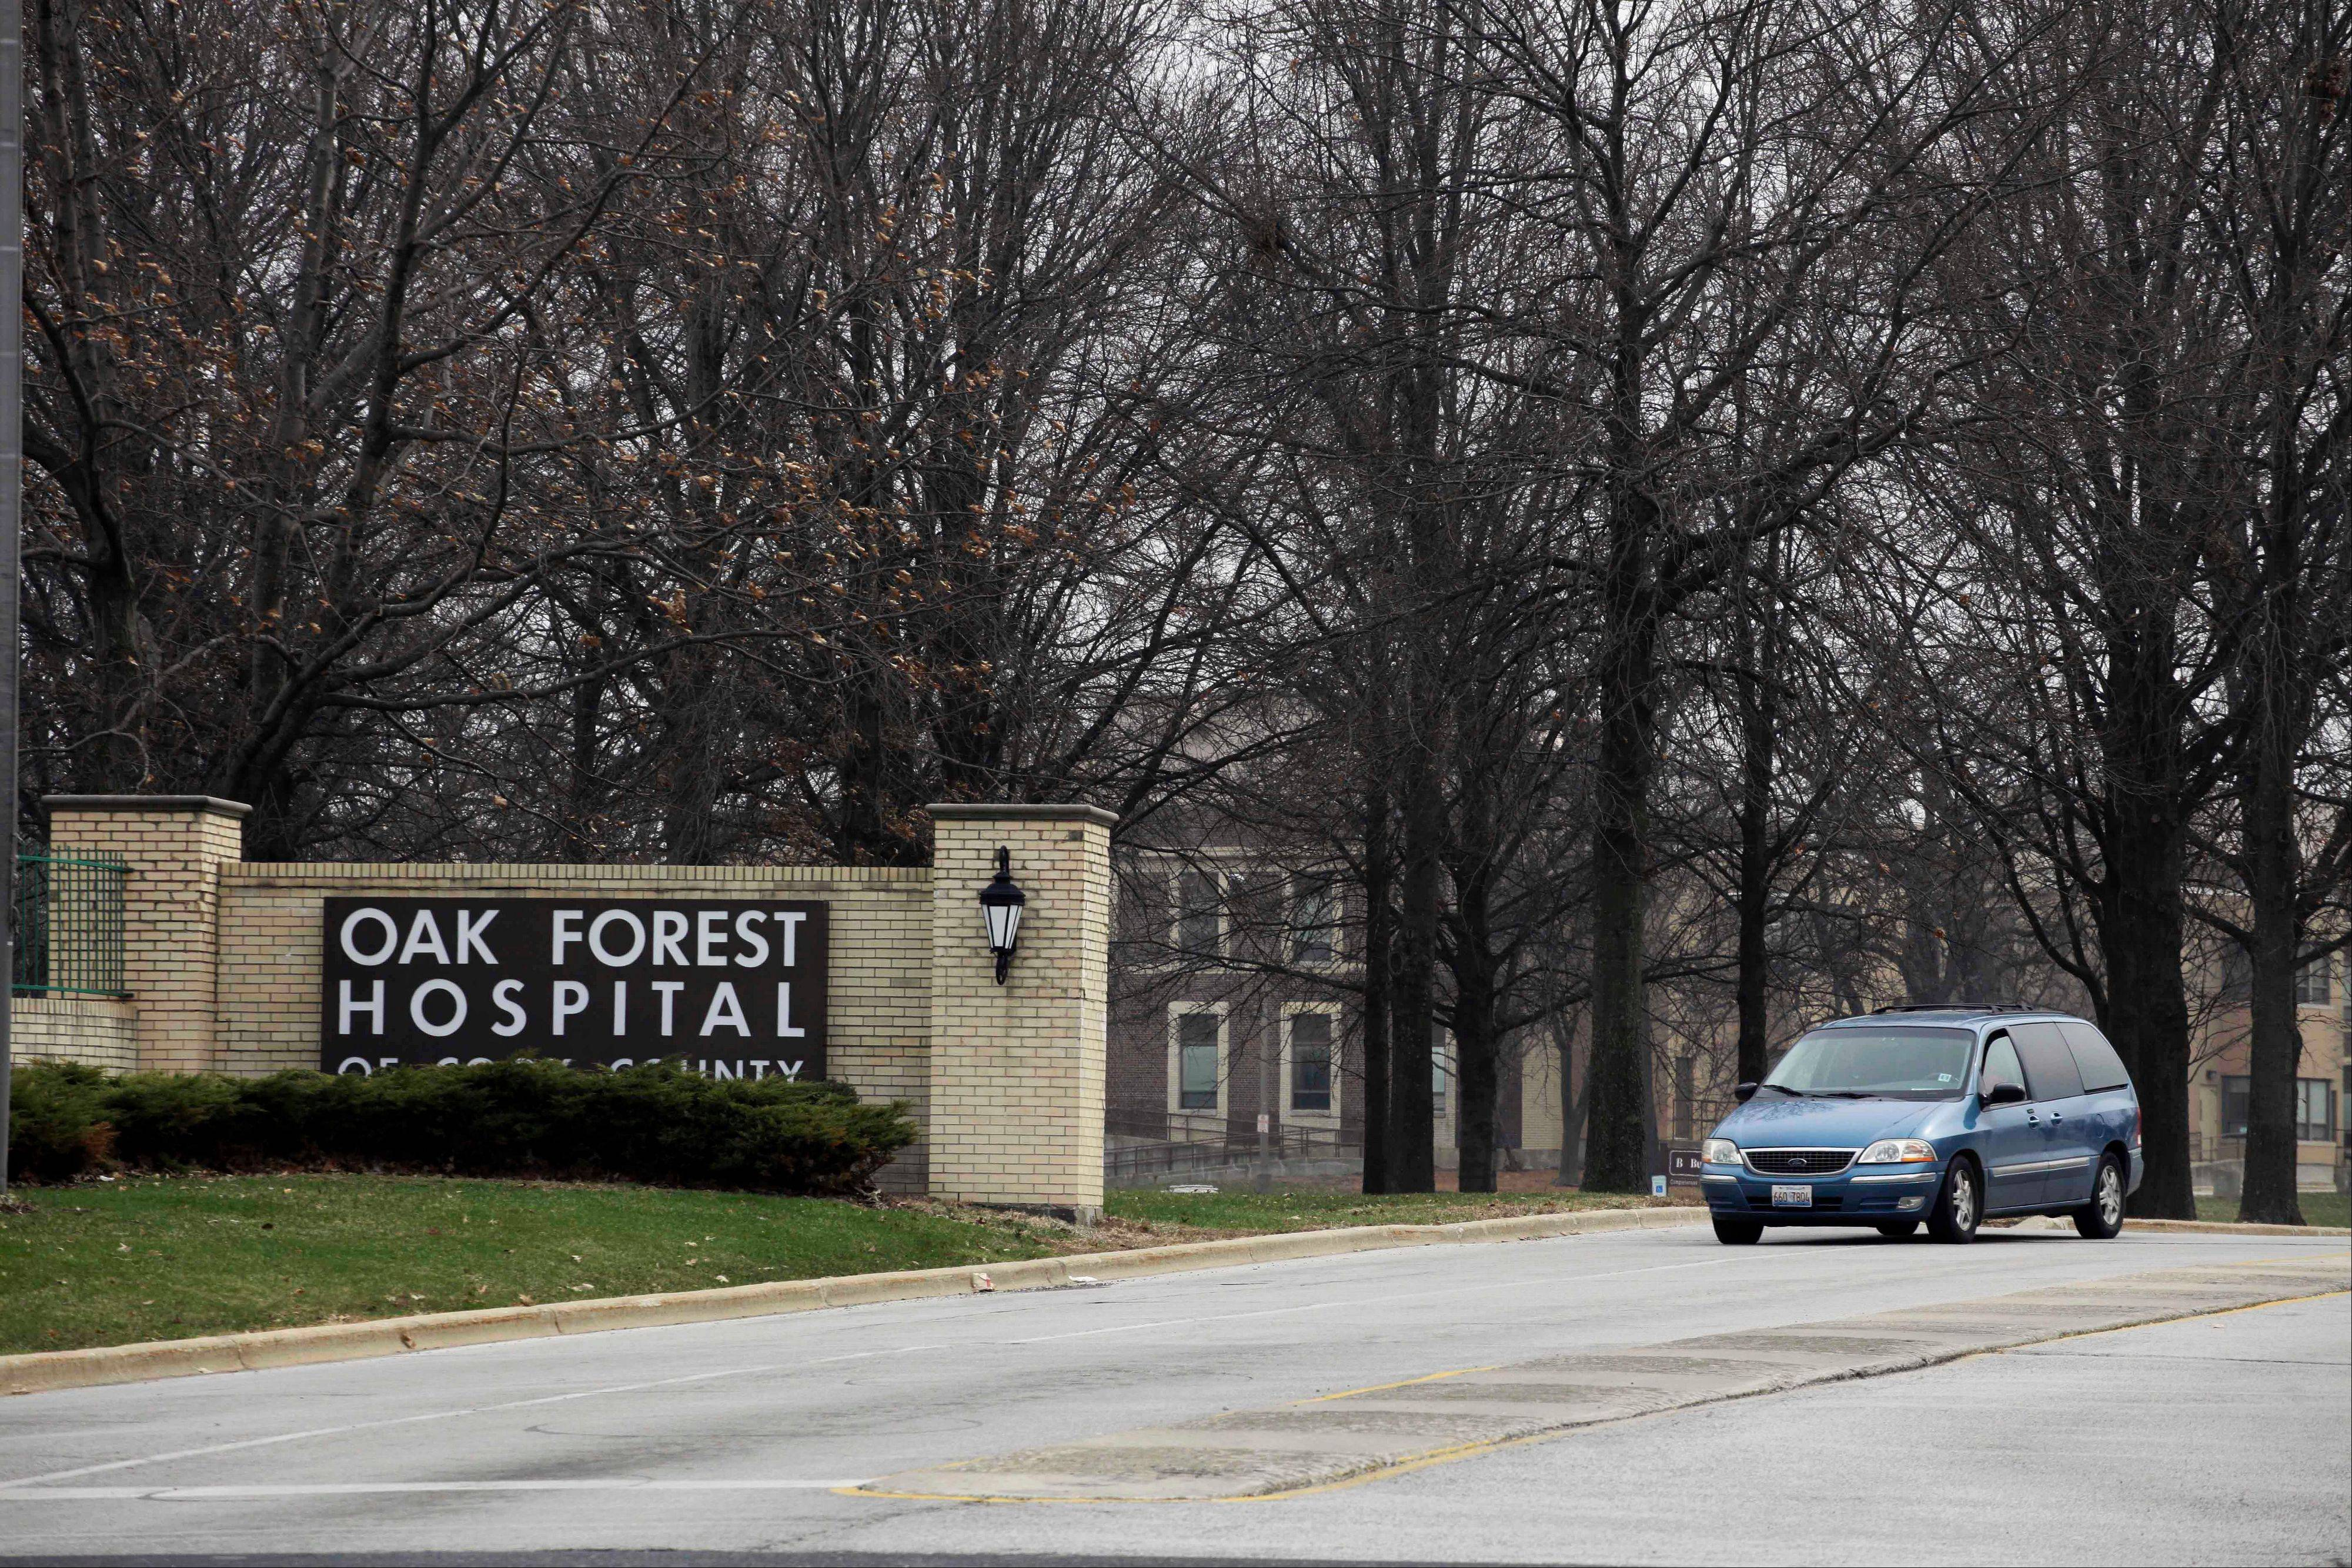 Cook County now plans to transfer the last nine long-term care patients out of Oak Forest Hospital by Sept. 1. The county will start implementing its three-year plan to turn the facility into an outpatient health center.